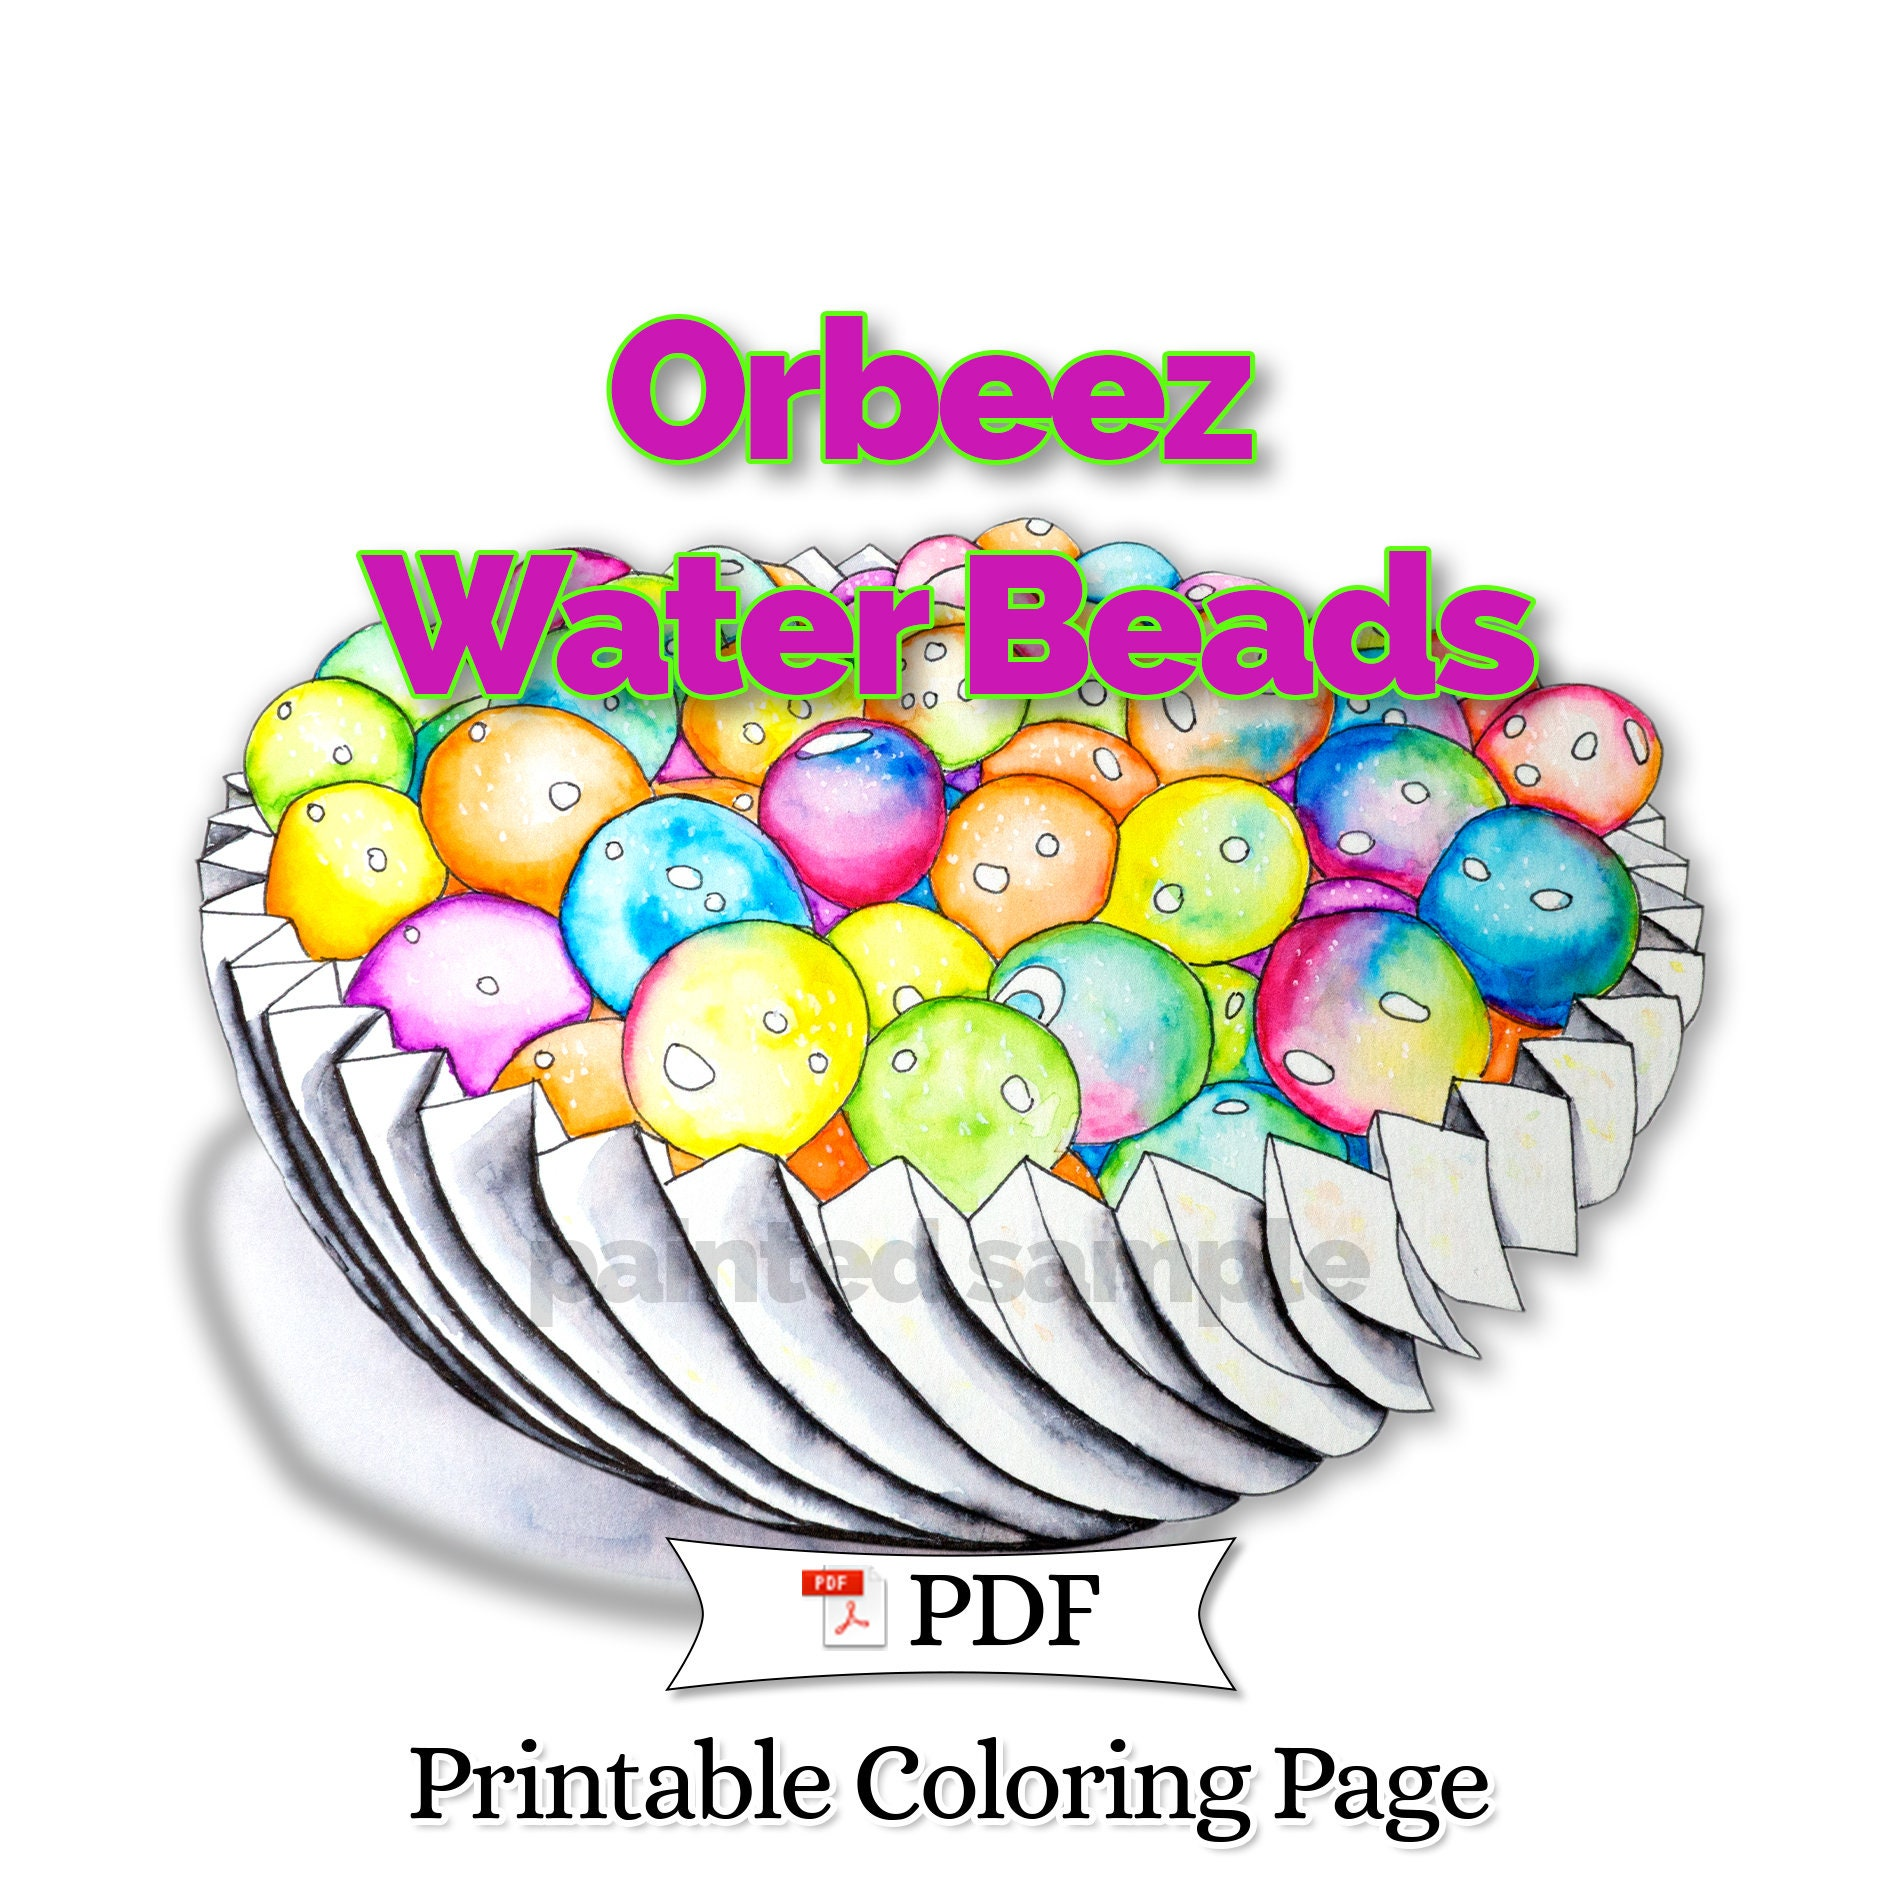 Orbeez Water Beads Coloring Page Printable Coloring Pdf Etsy